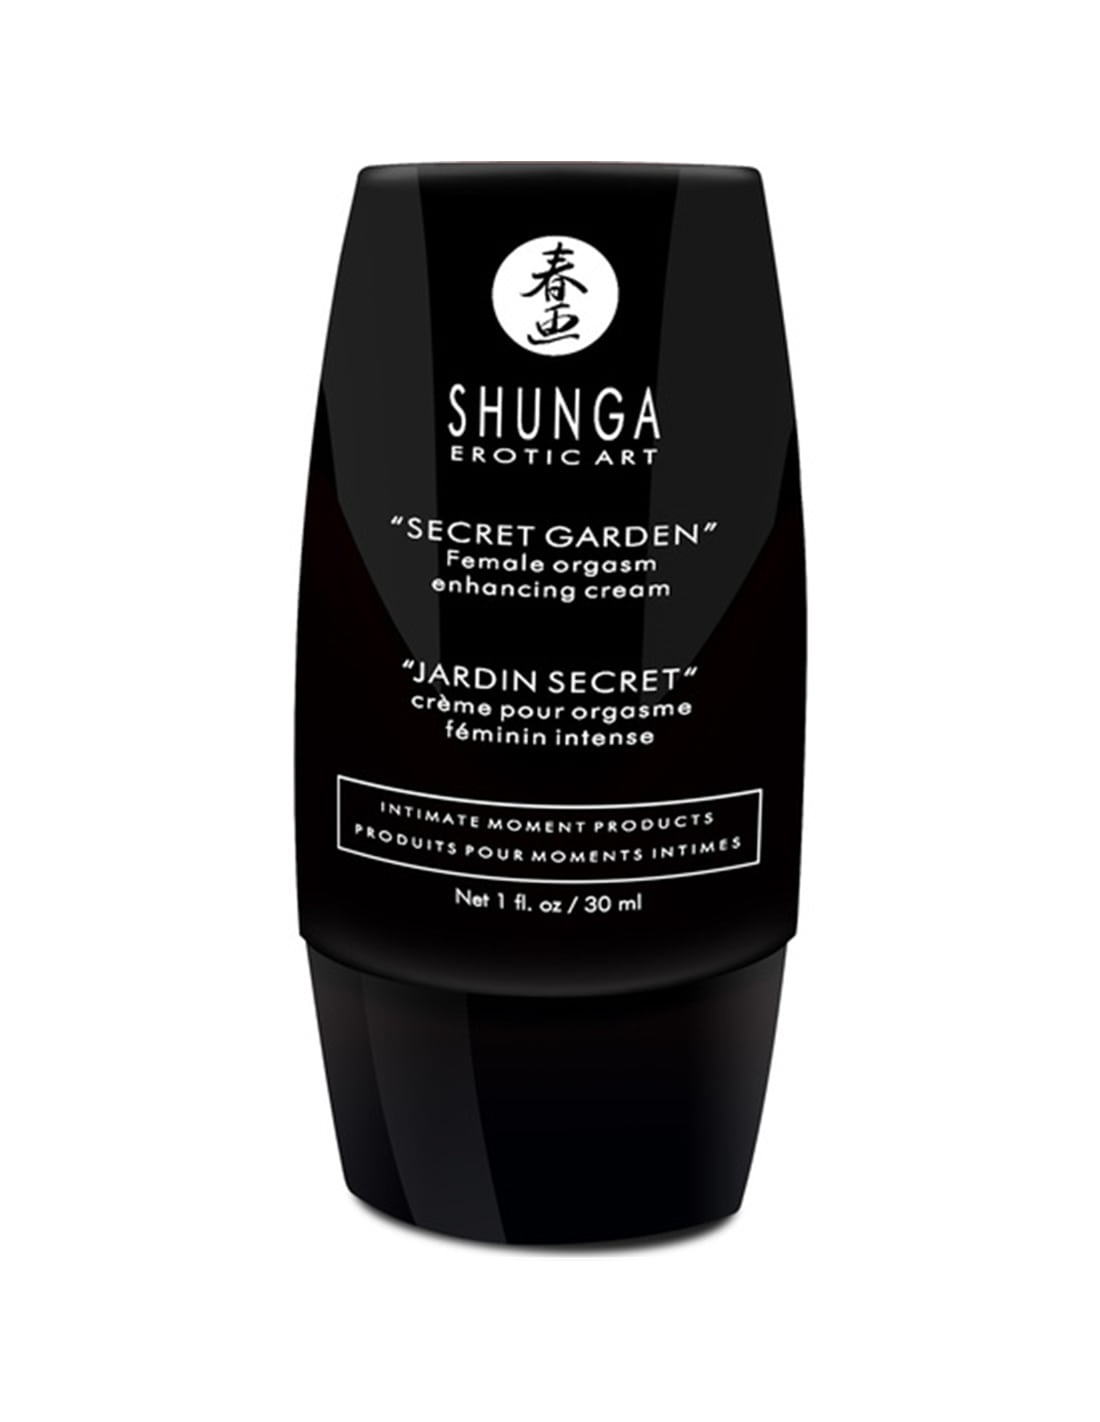 Gel Clitoriano Shunga Jardim Secreto - 30ml - DO29010869